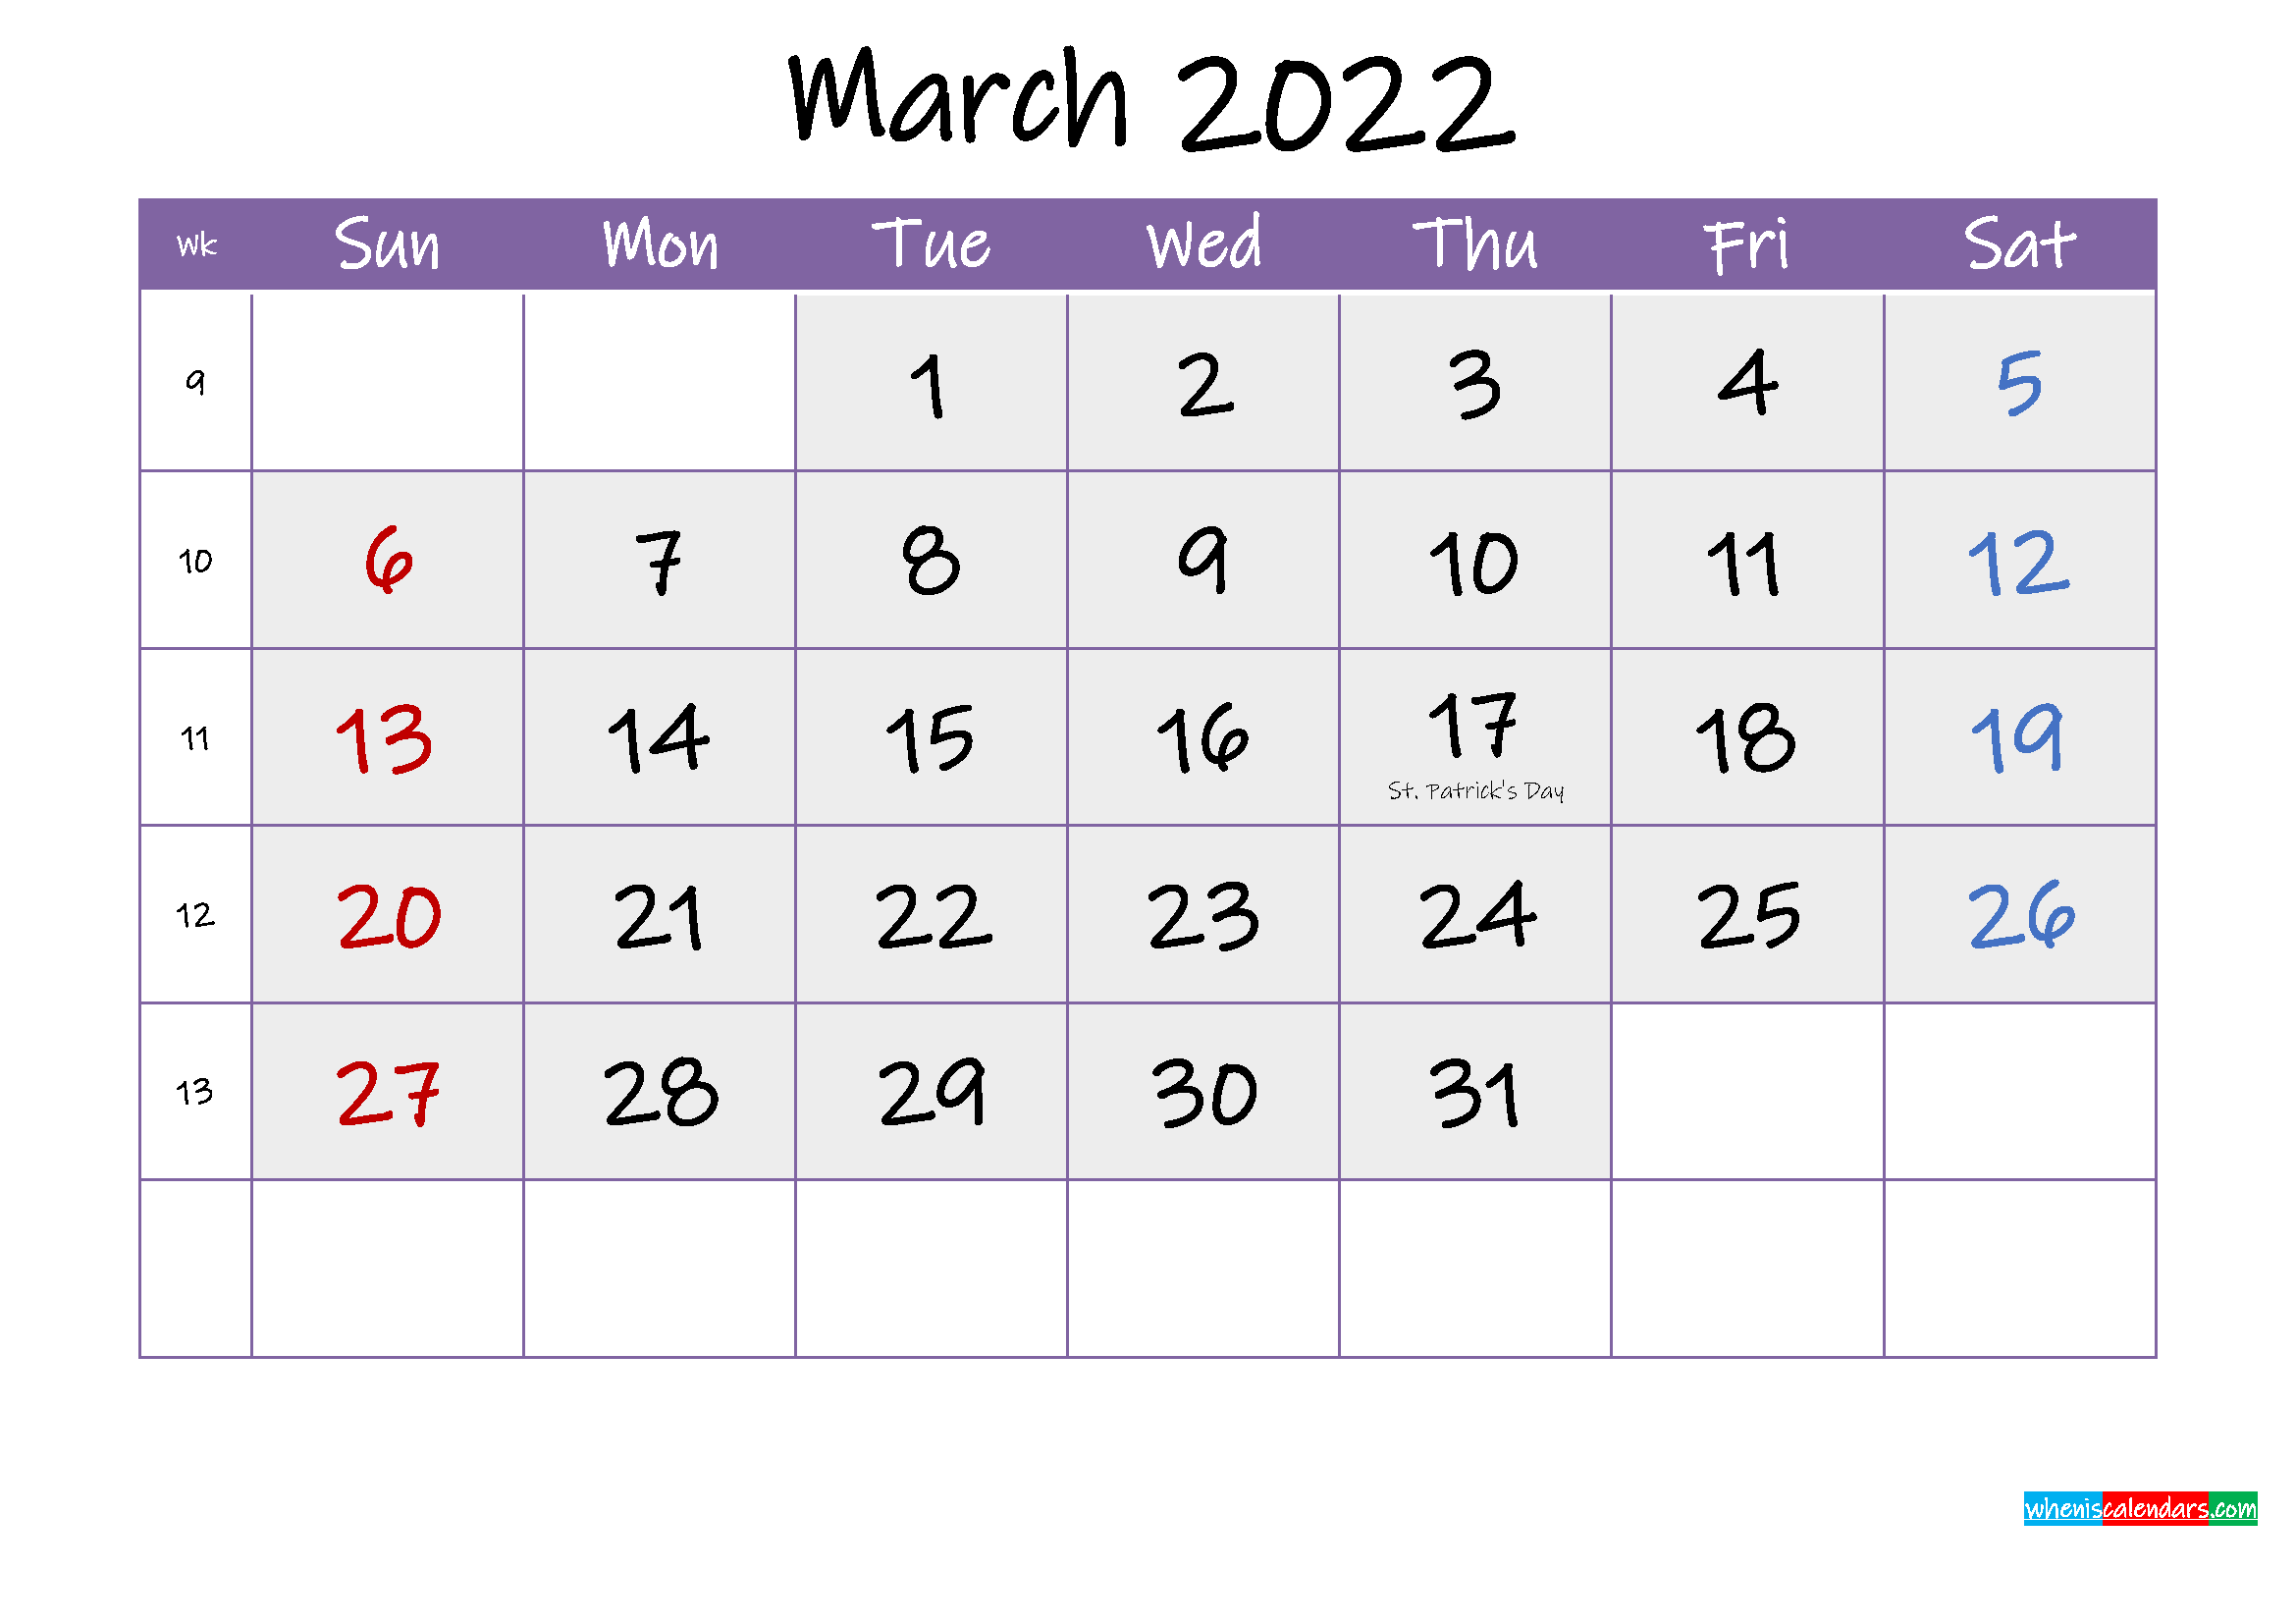 Free March 2022 Printable Calendar with Holidays